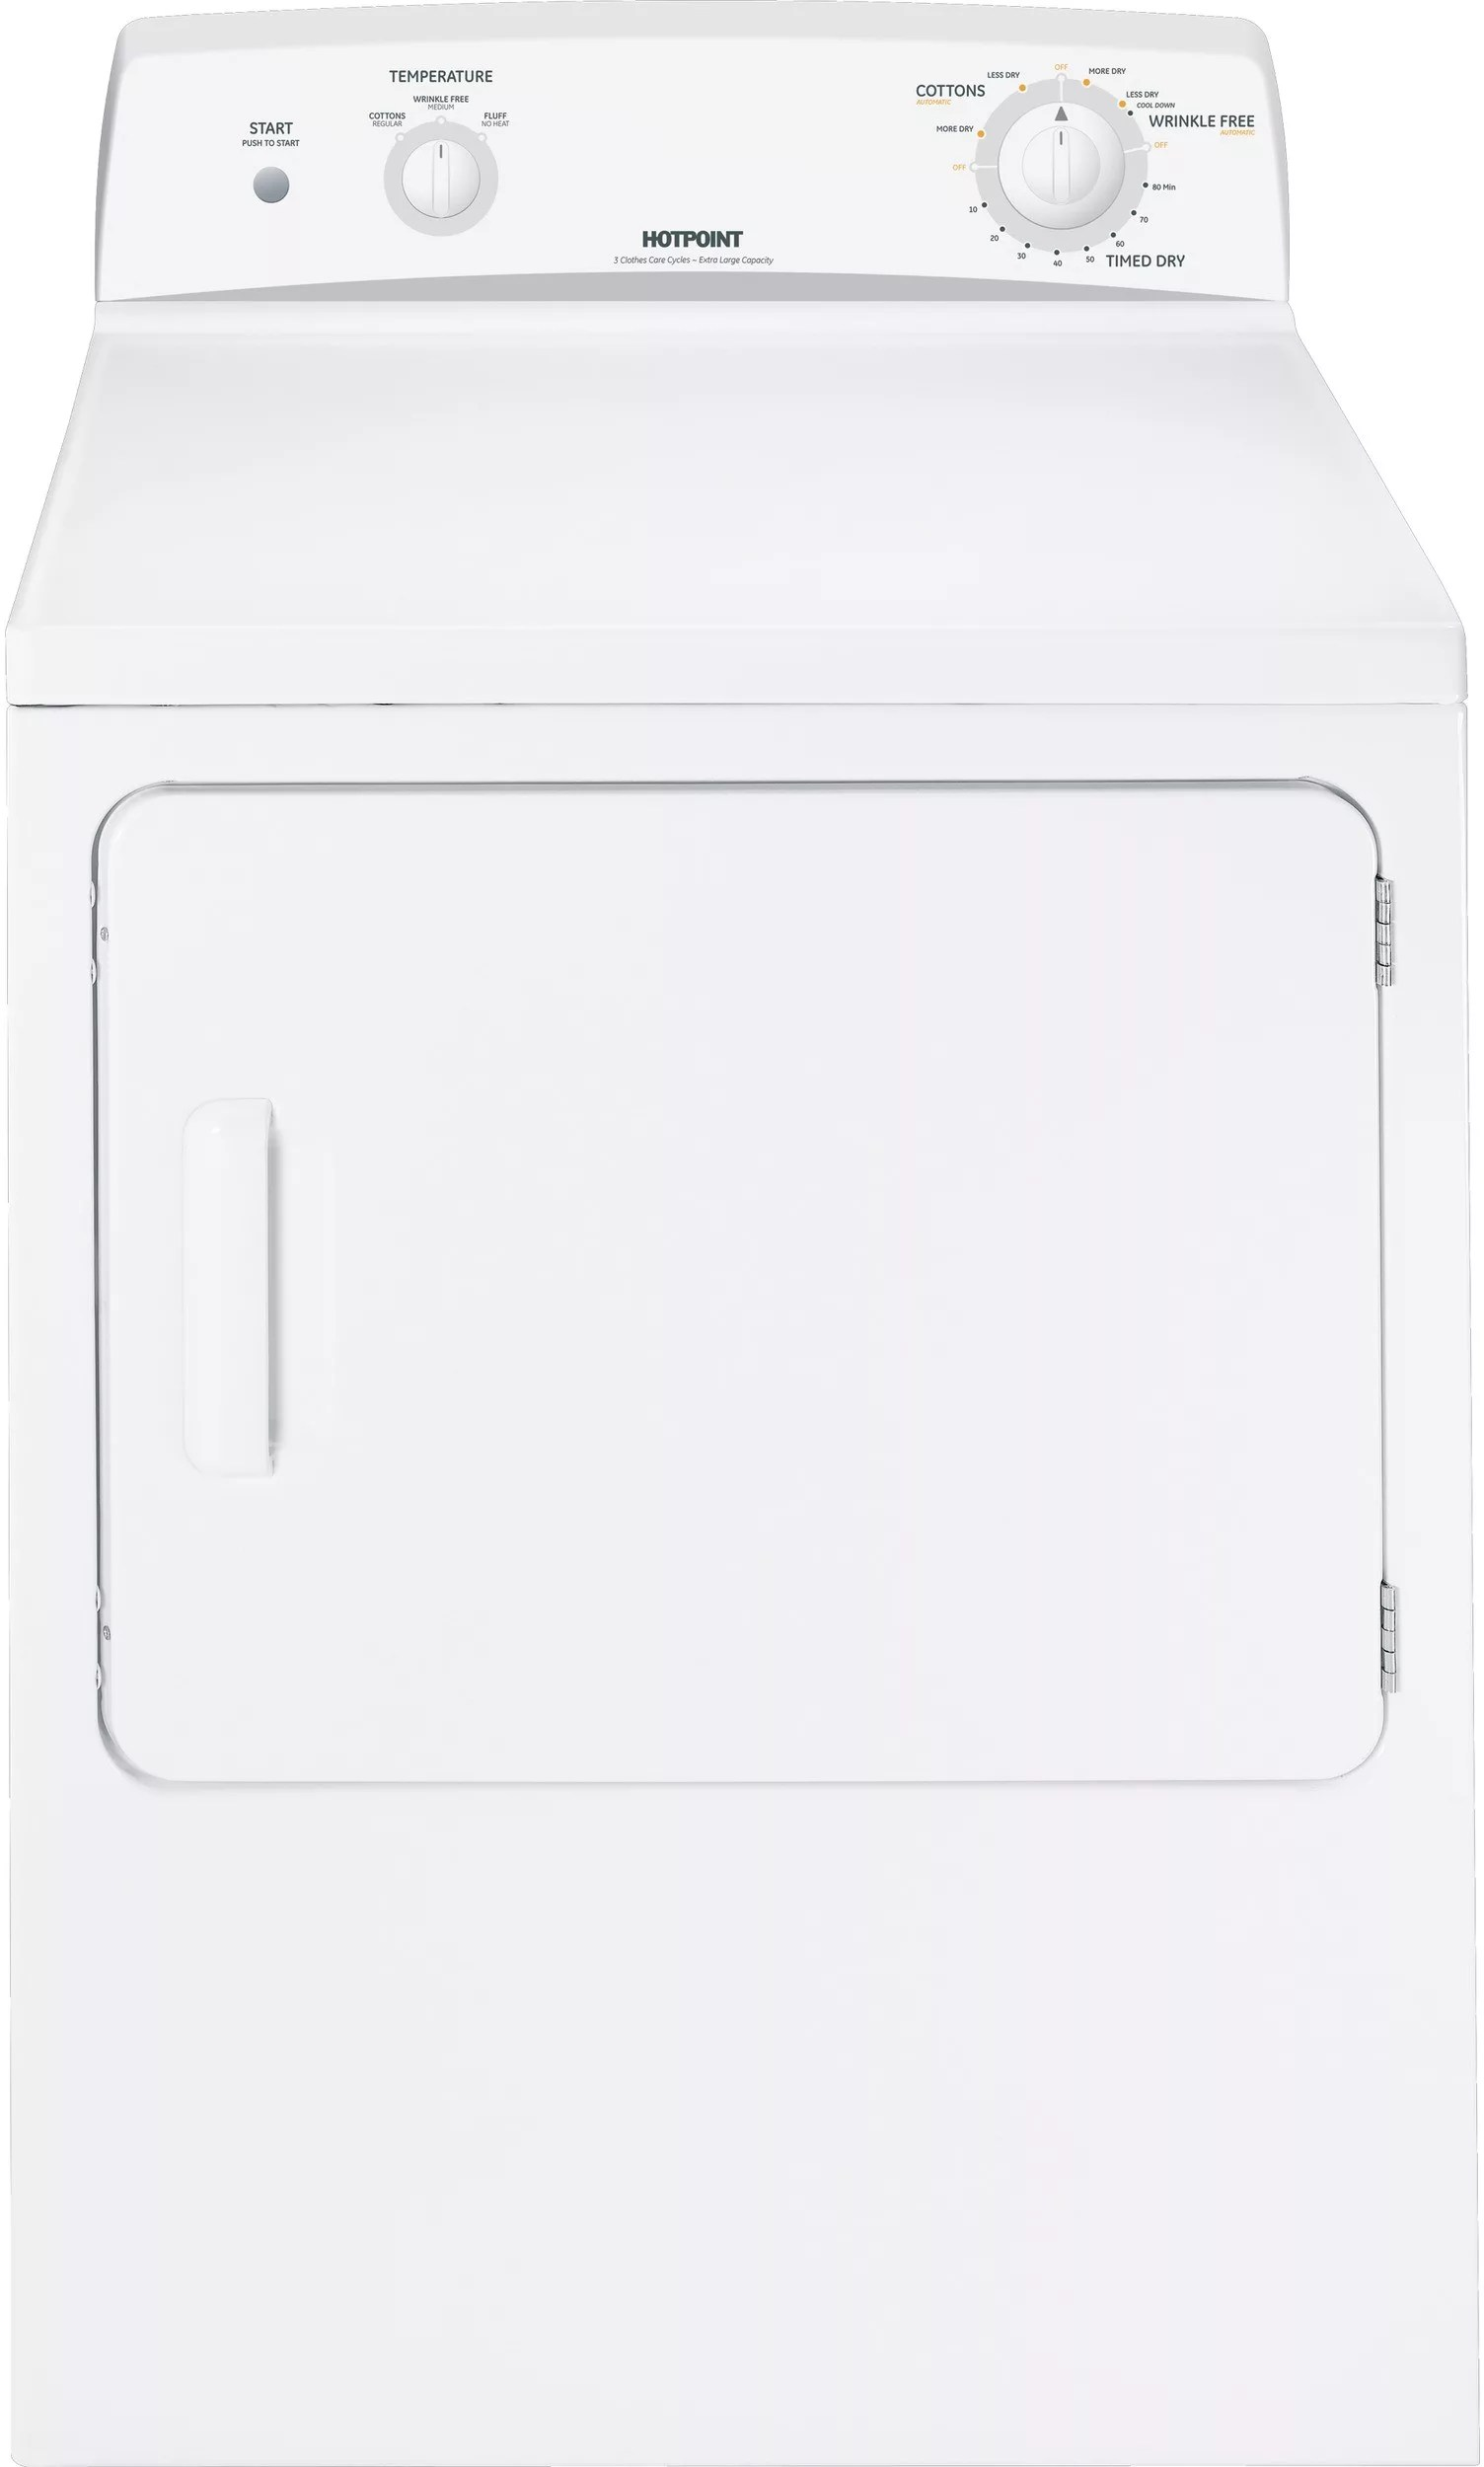 Hotpoint HTDX100EMWW 27 Inch Electric Dryer with 6.0 cu